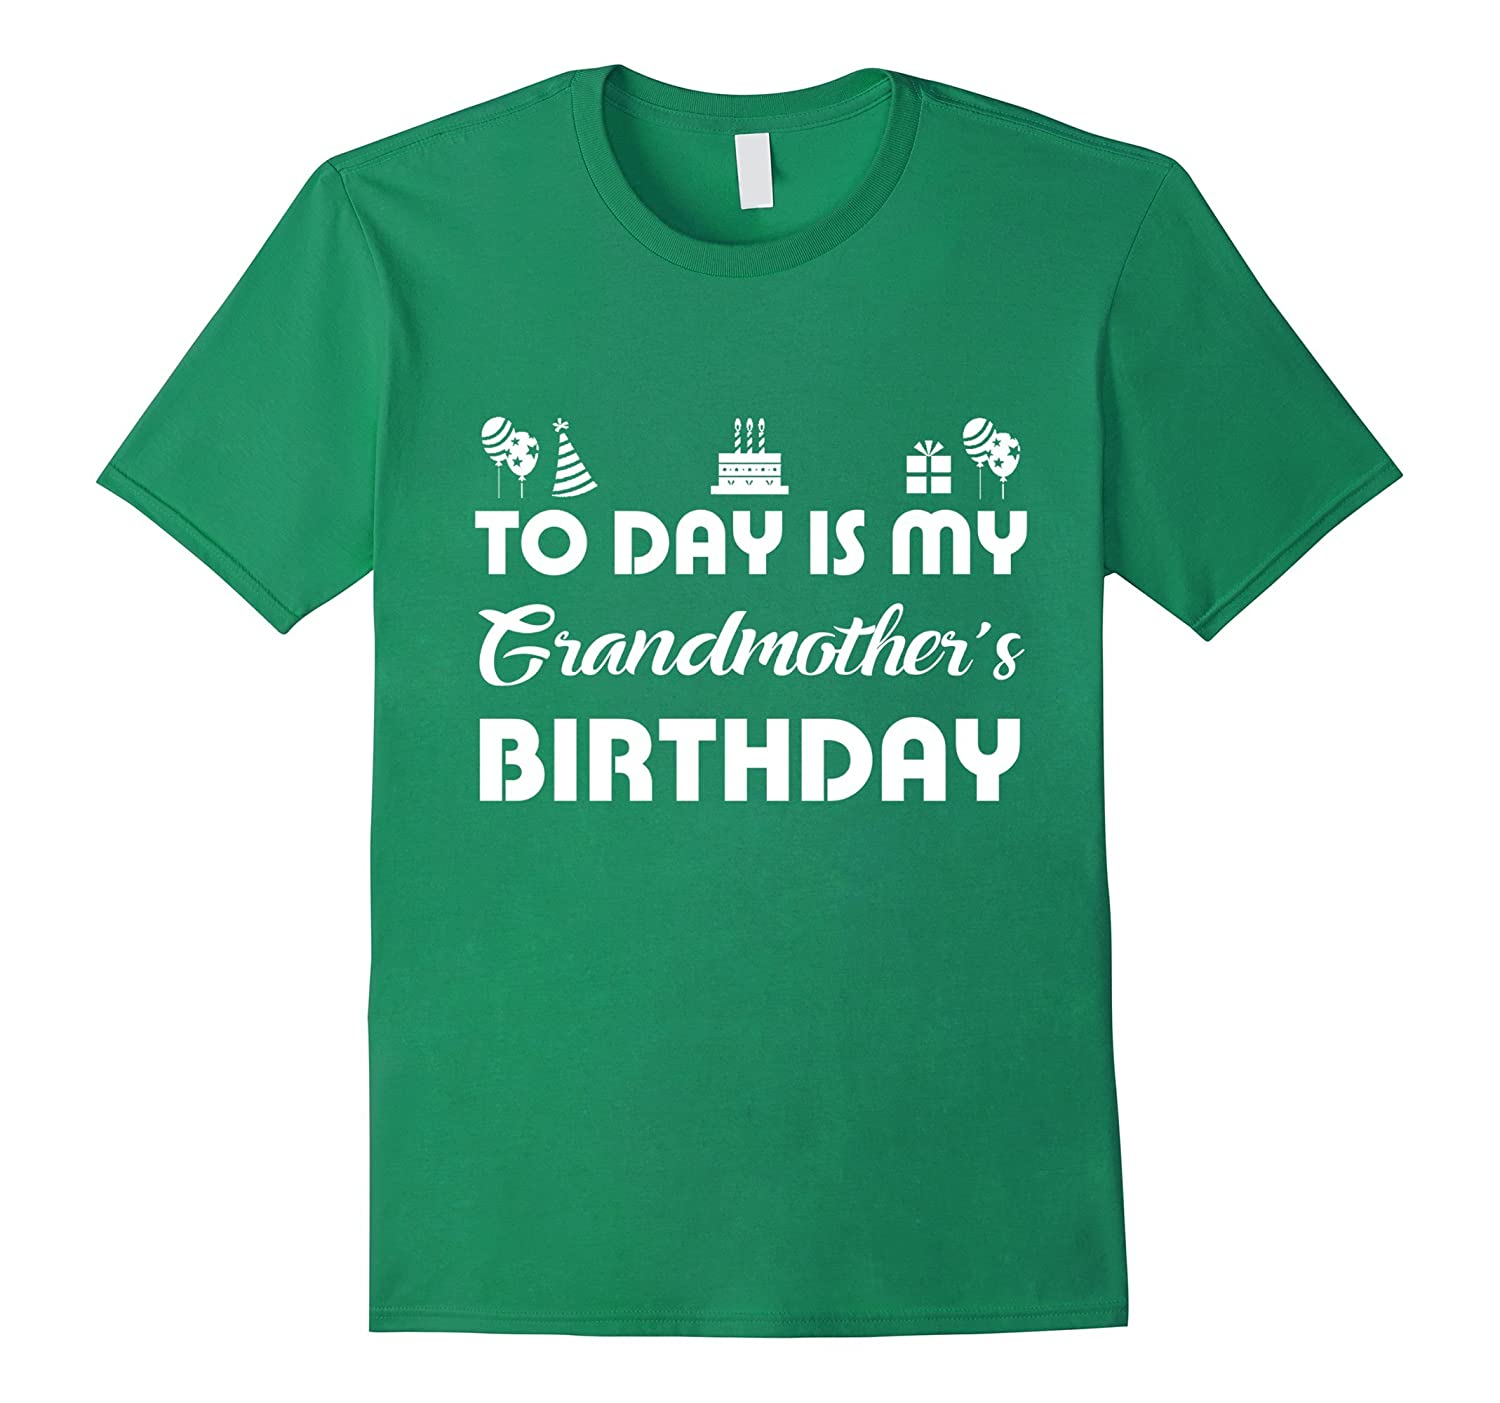 Today Is My Grandmothers Birthday Funny T Shirt ANZ